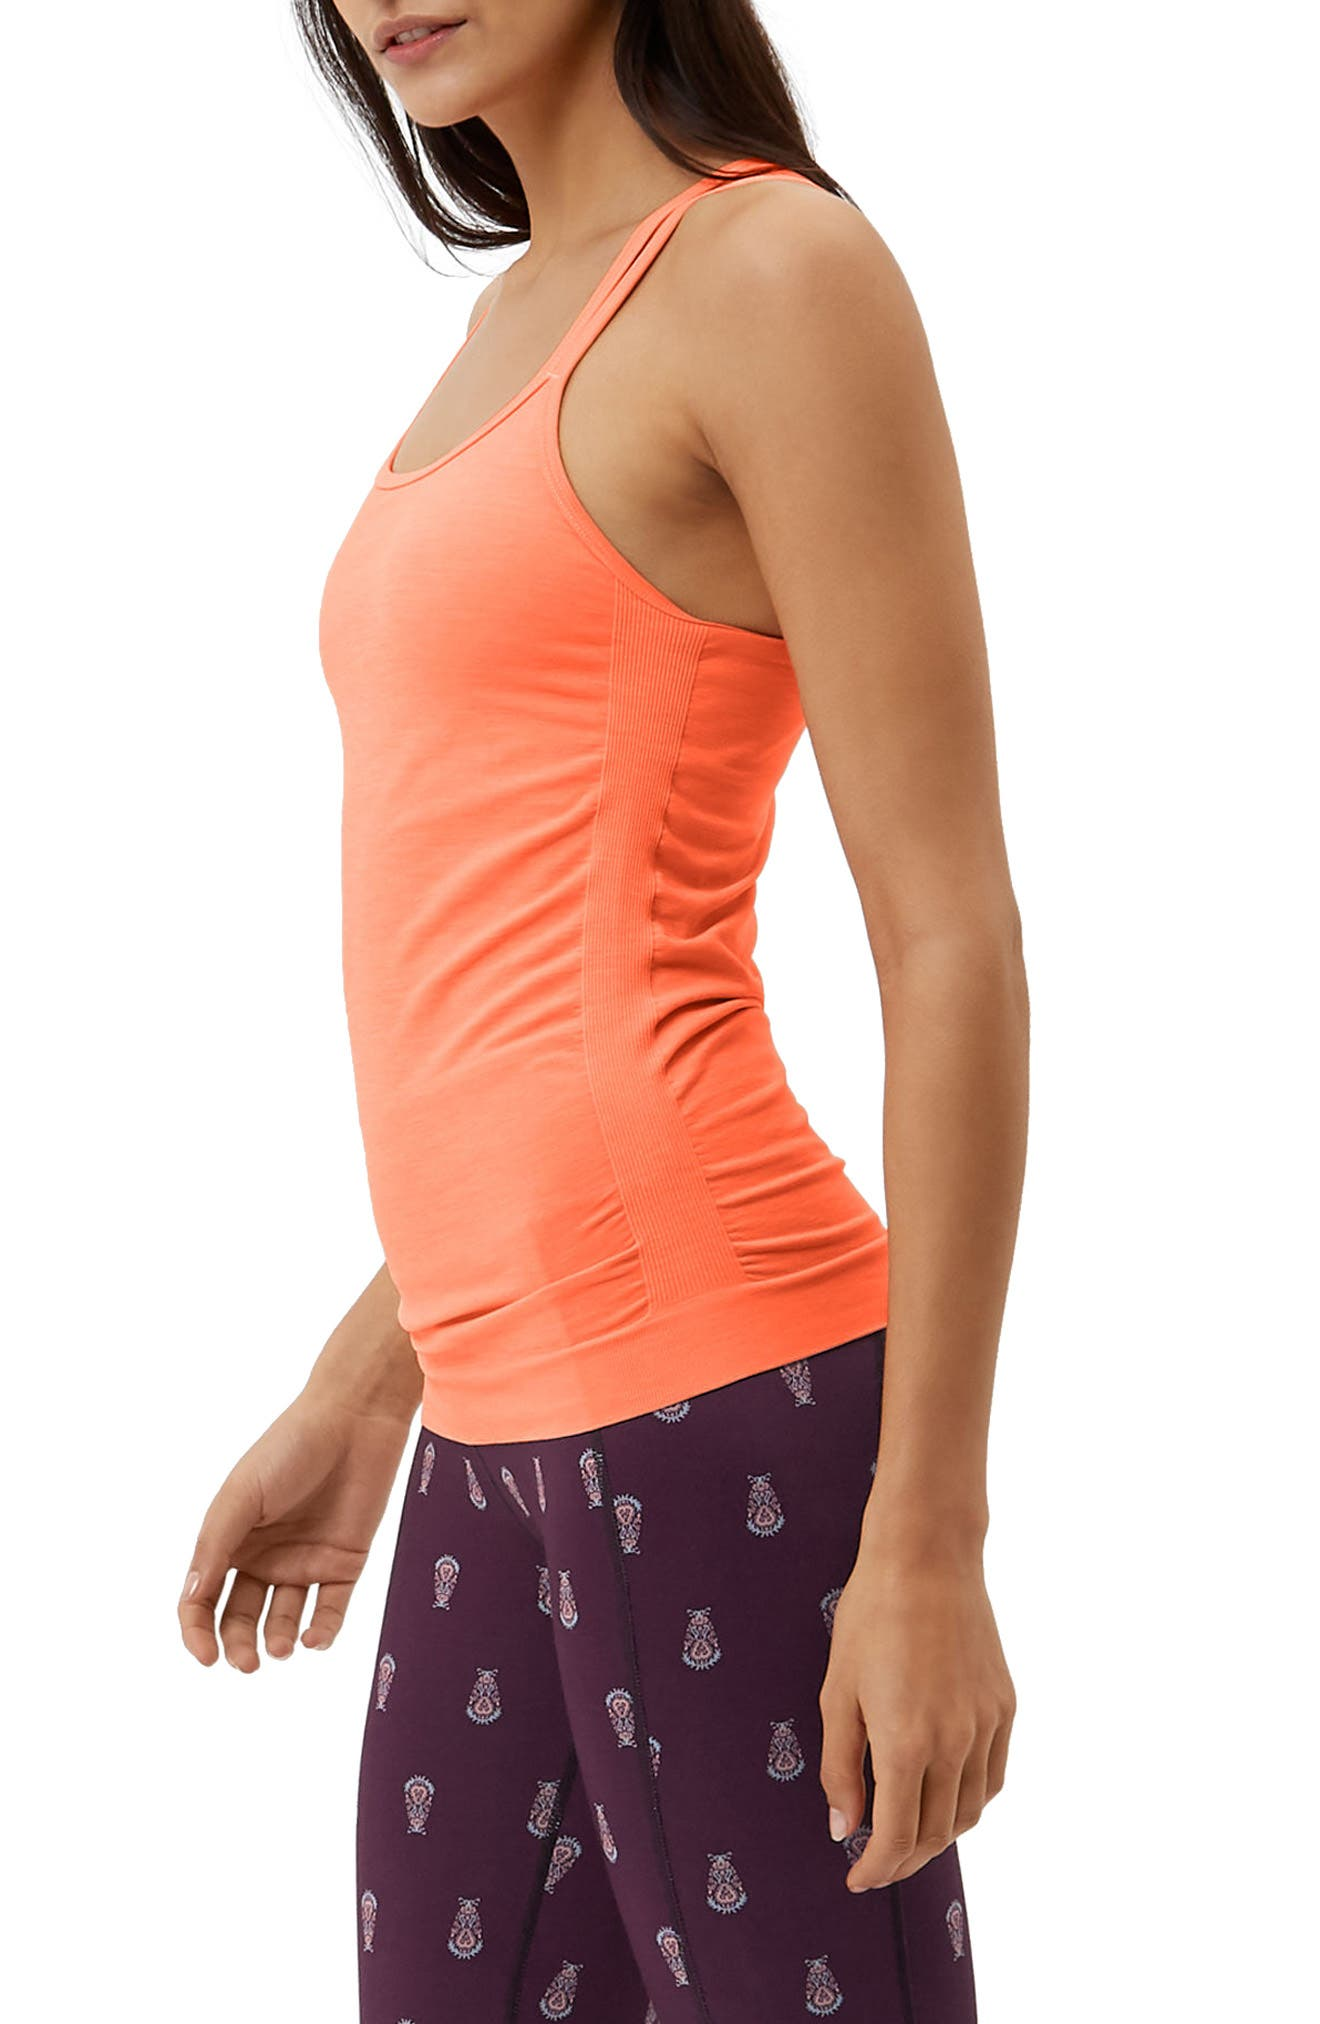 Namaska Yoga Tank,                             Alternate thumbnail 6, color,